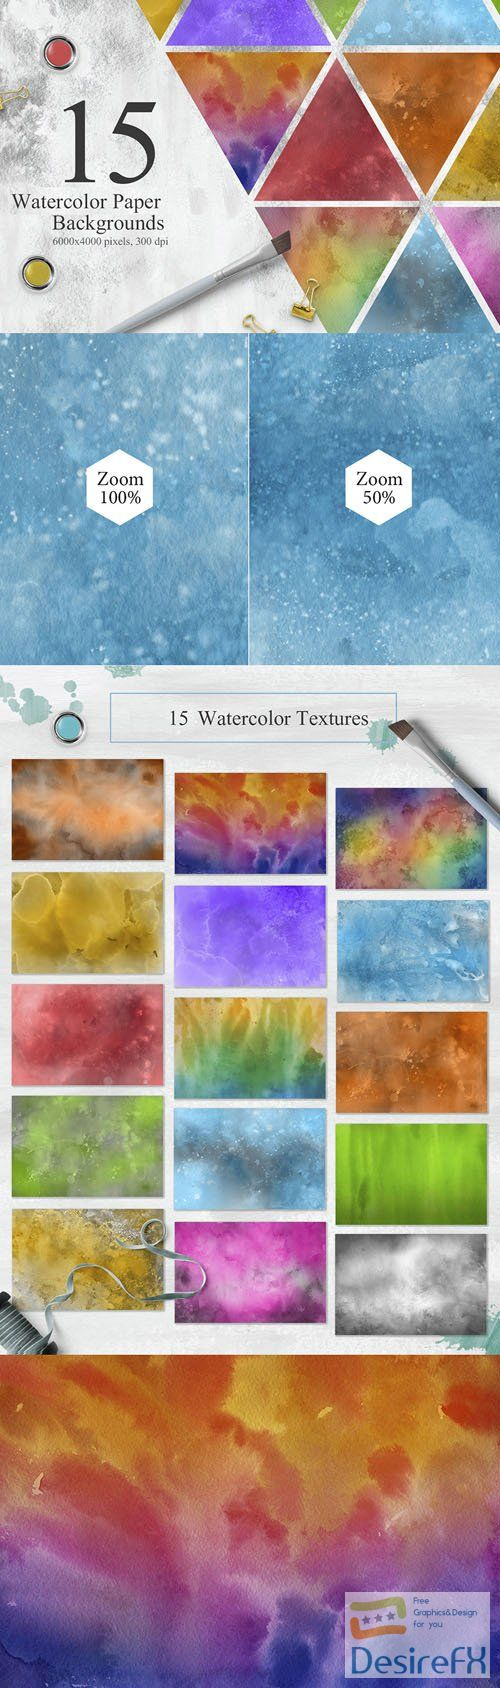 15 Watercolor Textures Backgrounds